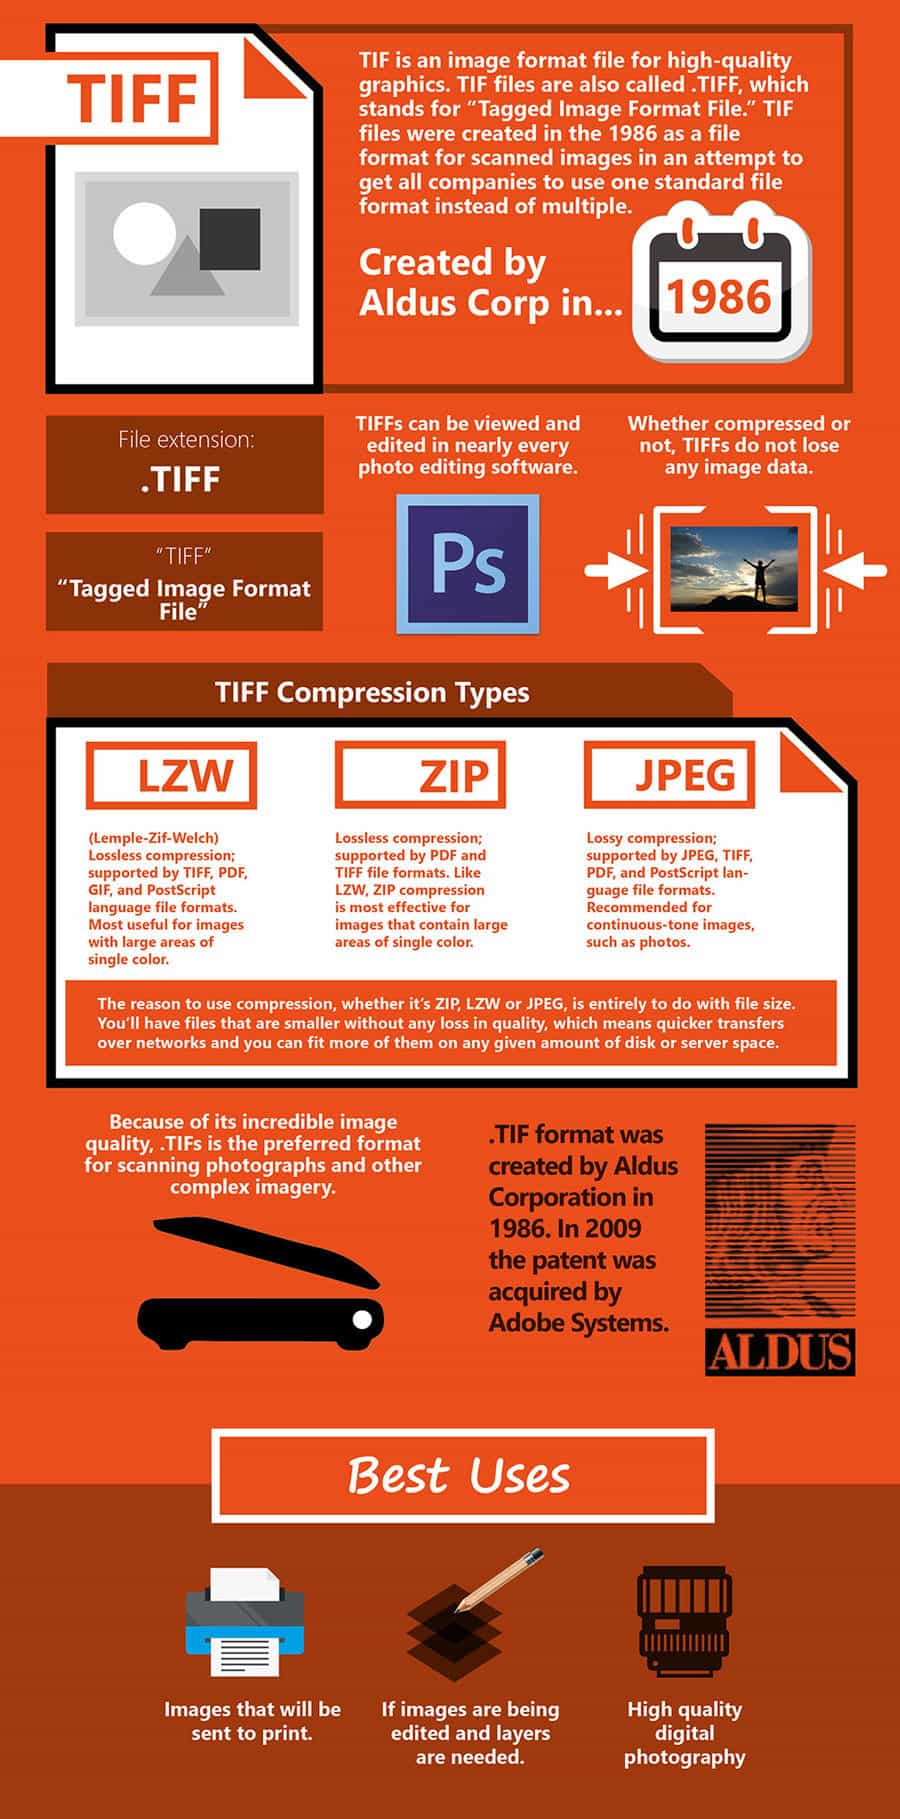 TIFF-file-image-format-infographic